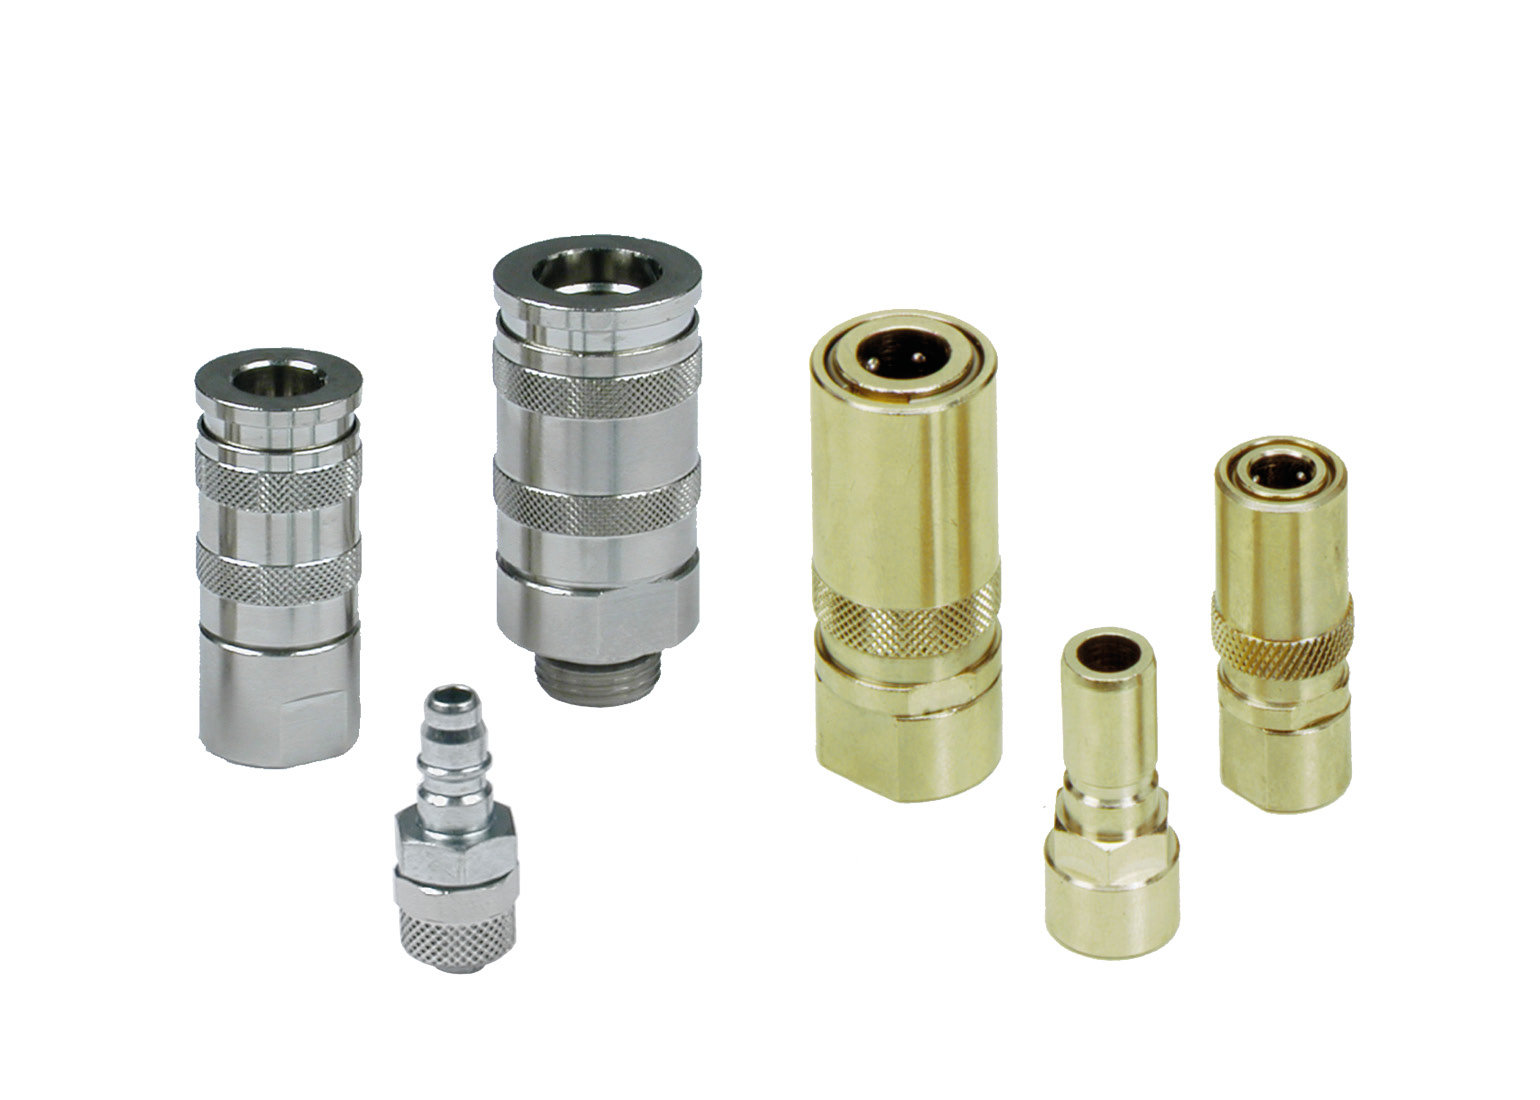 QUICK-FIT IAC ANS ISC SERIES